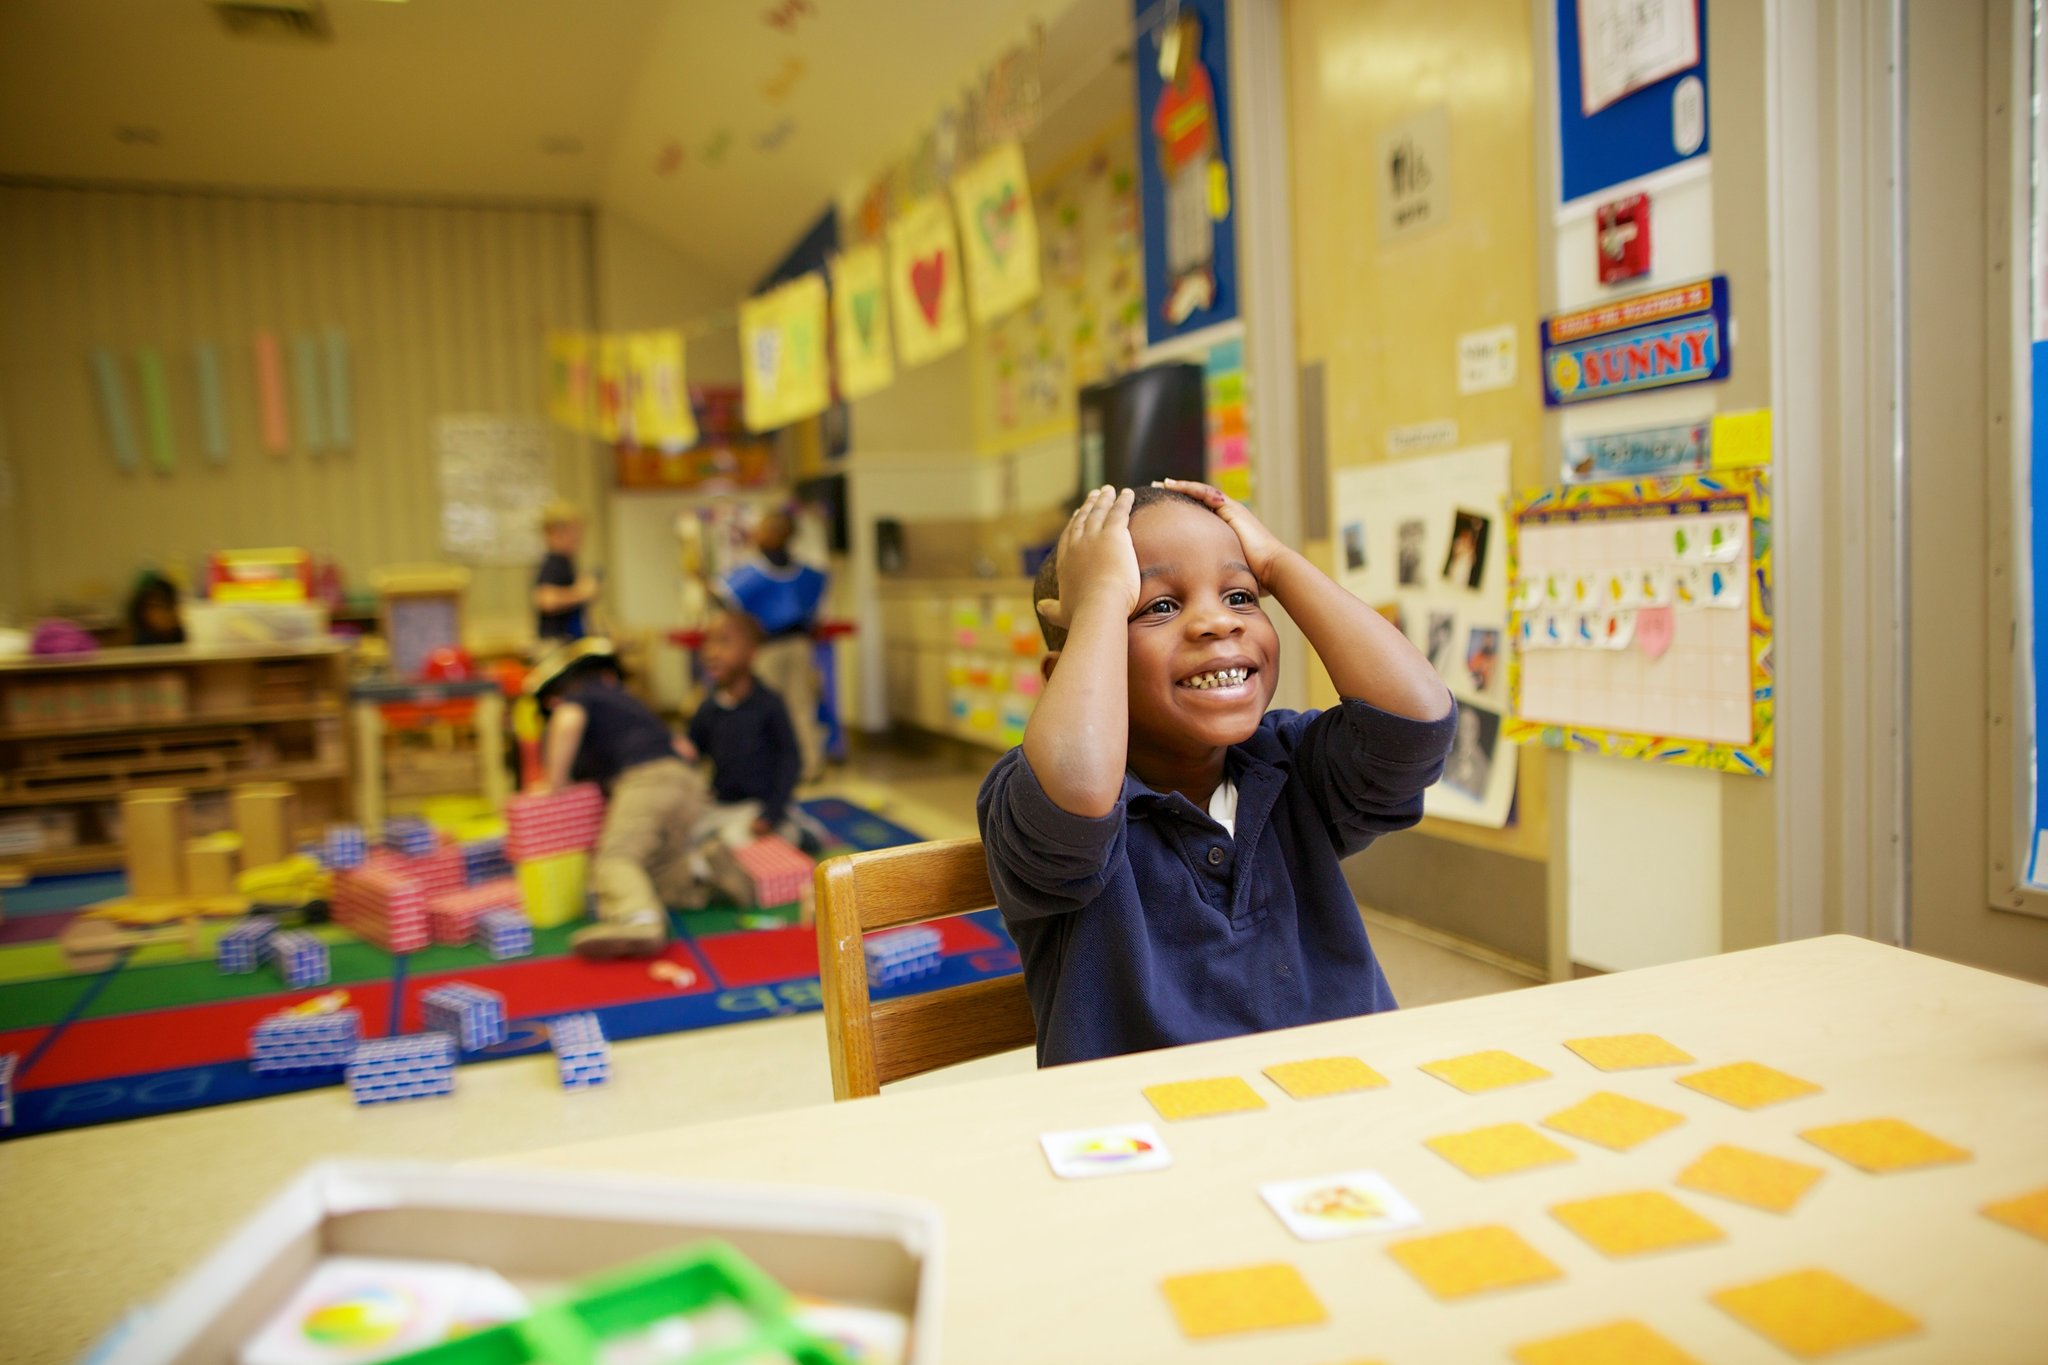 Student Opinion Should All Children Be Able To Go To Preschool